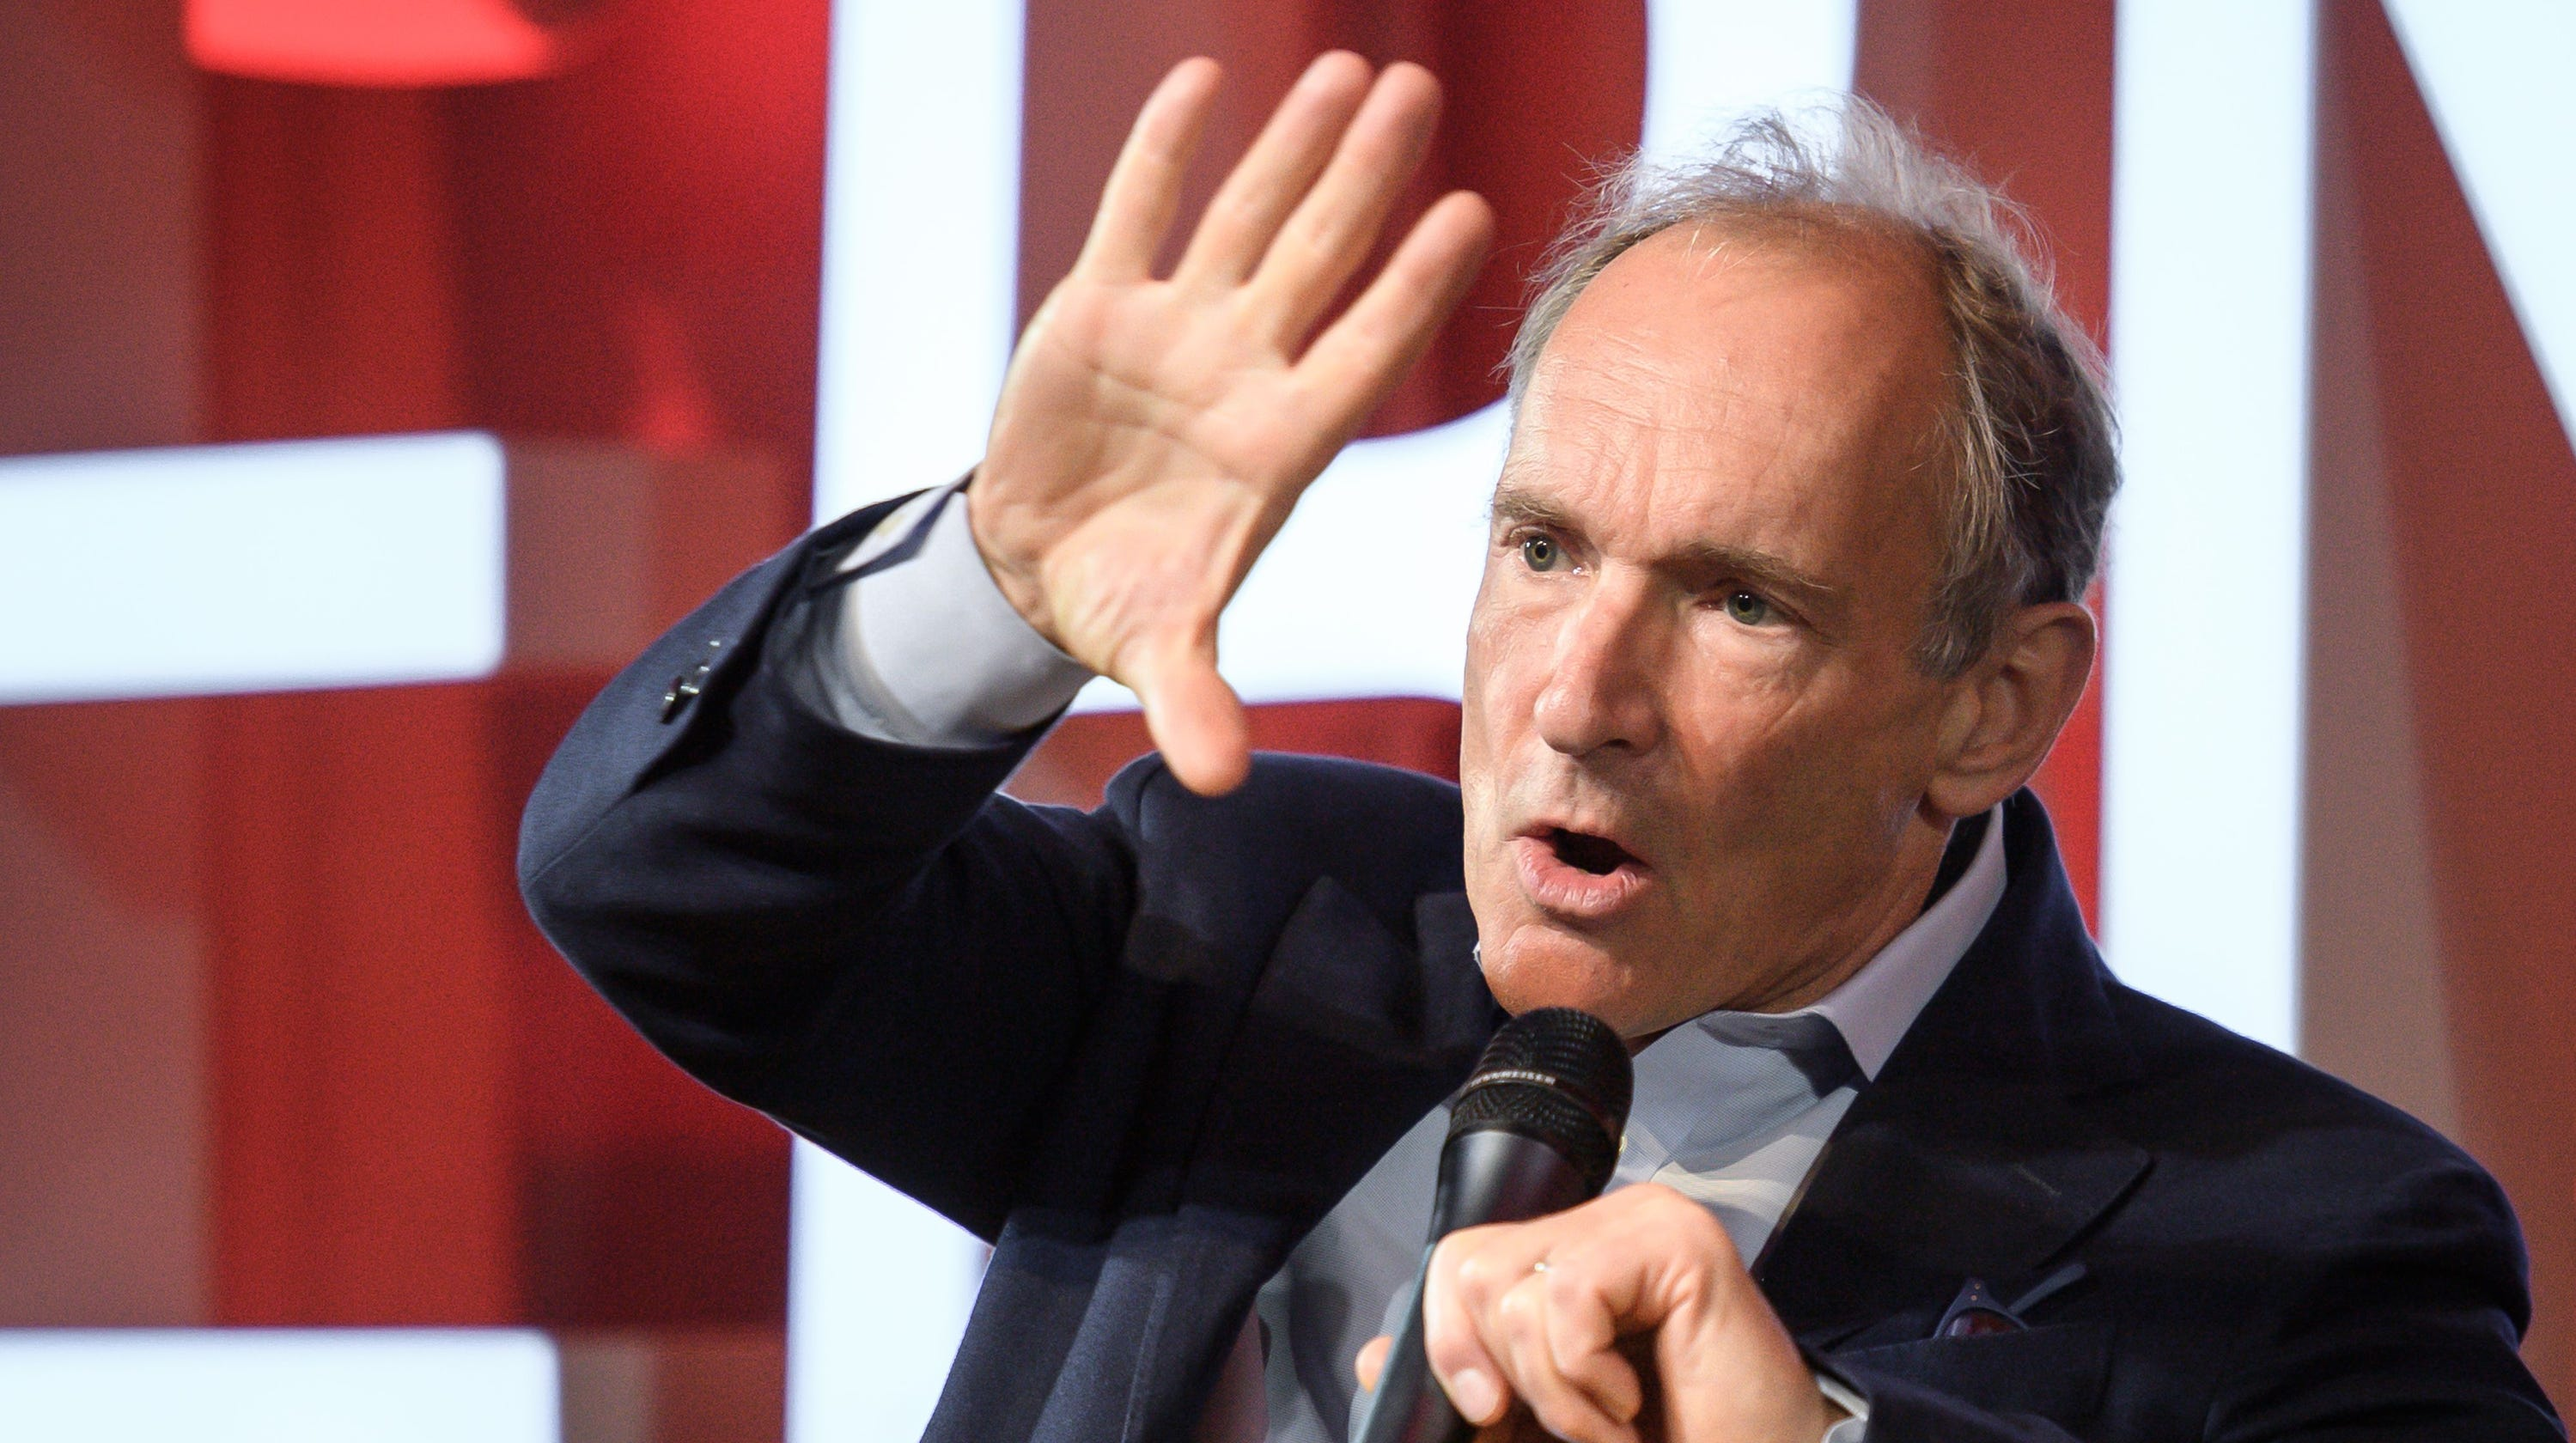 World Wide Web inventor Tim Berners-Lee takes on Google, Facebook, Amazon to fix the internet